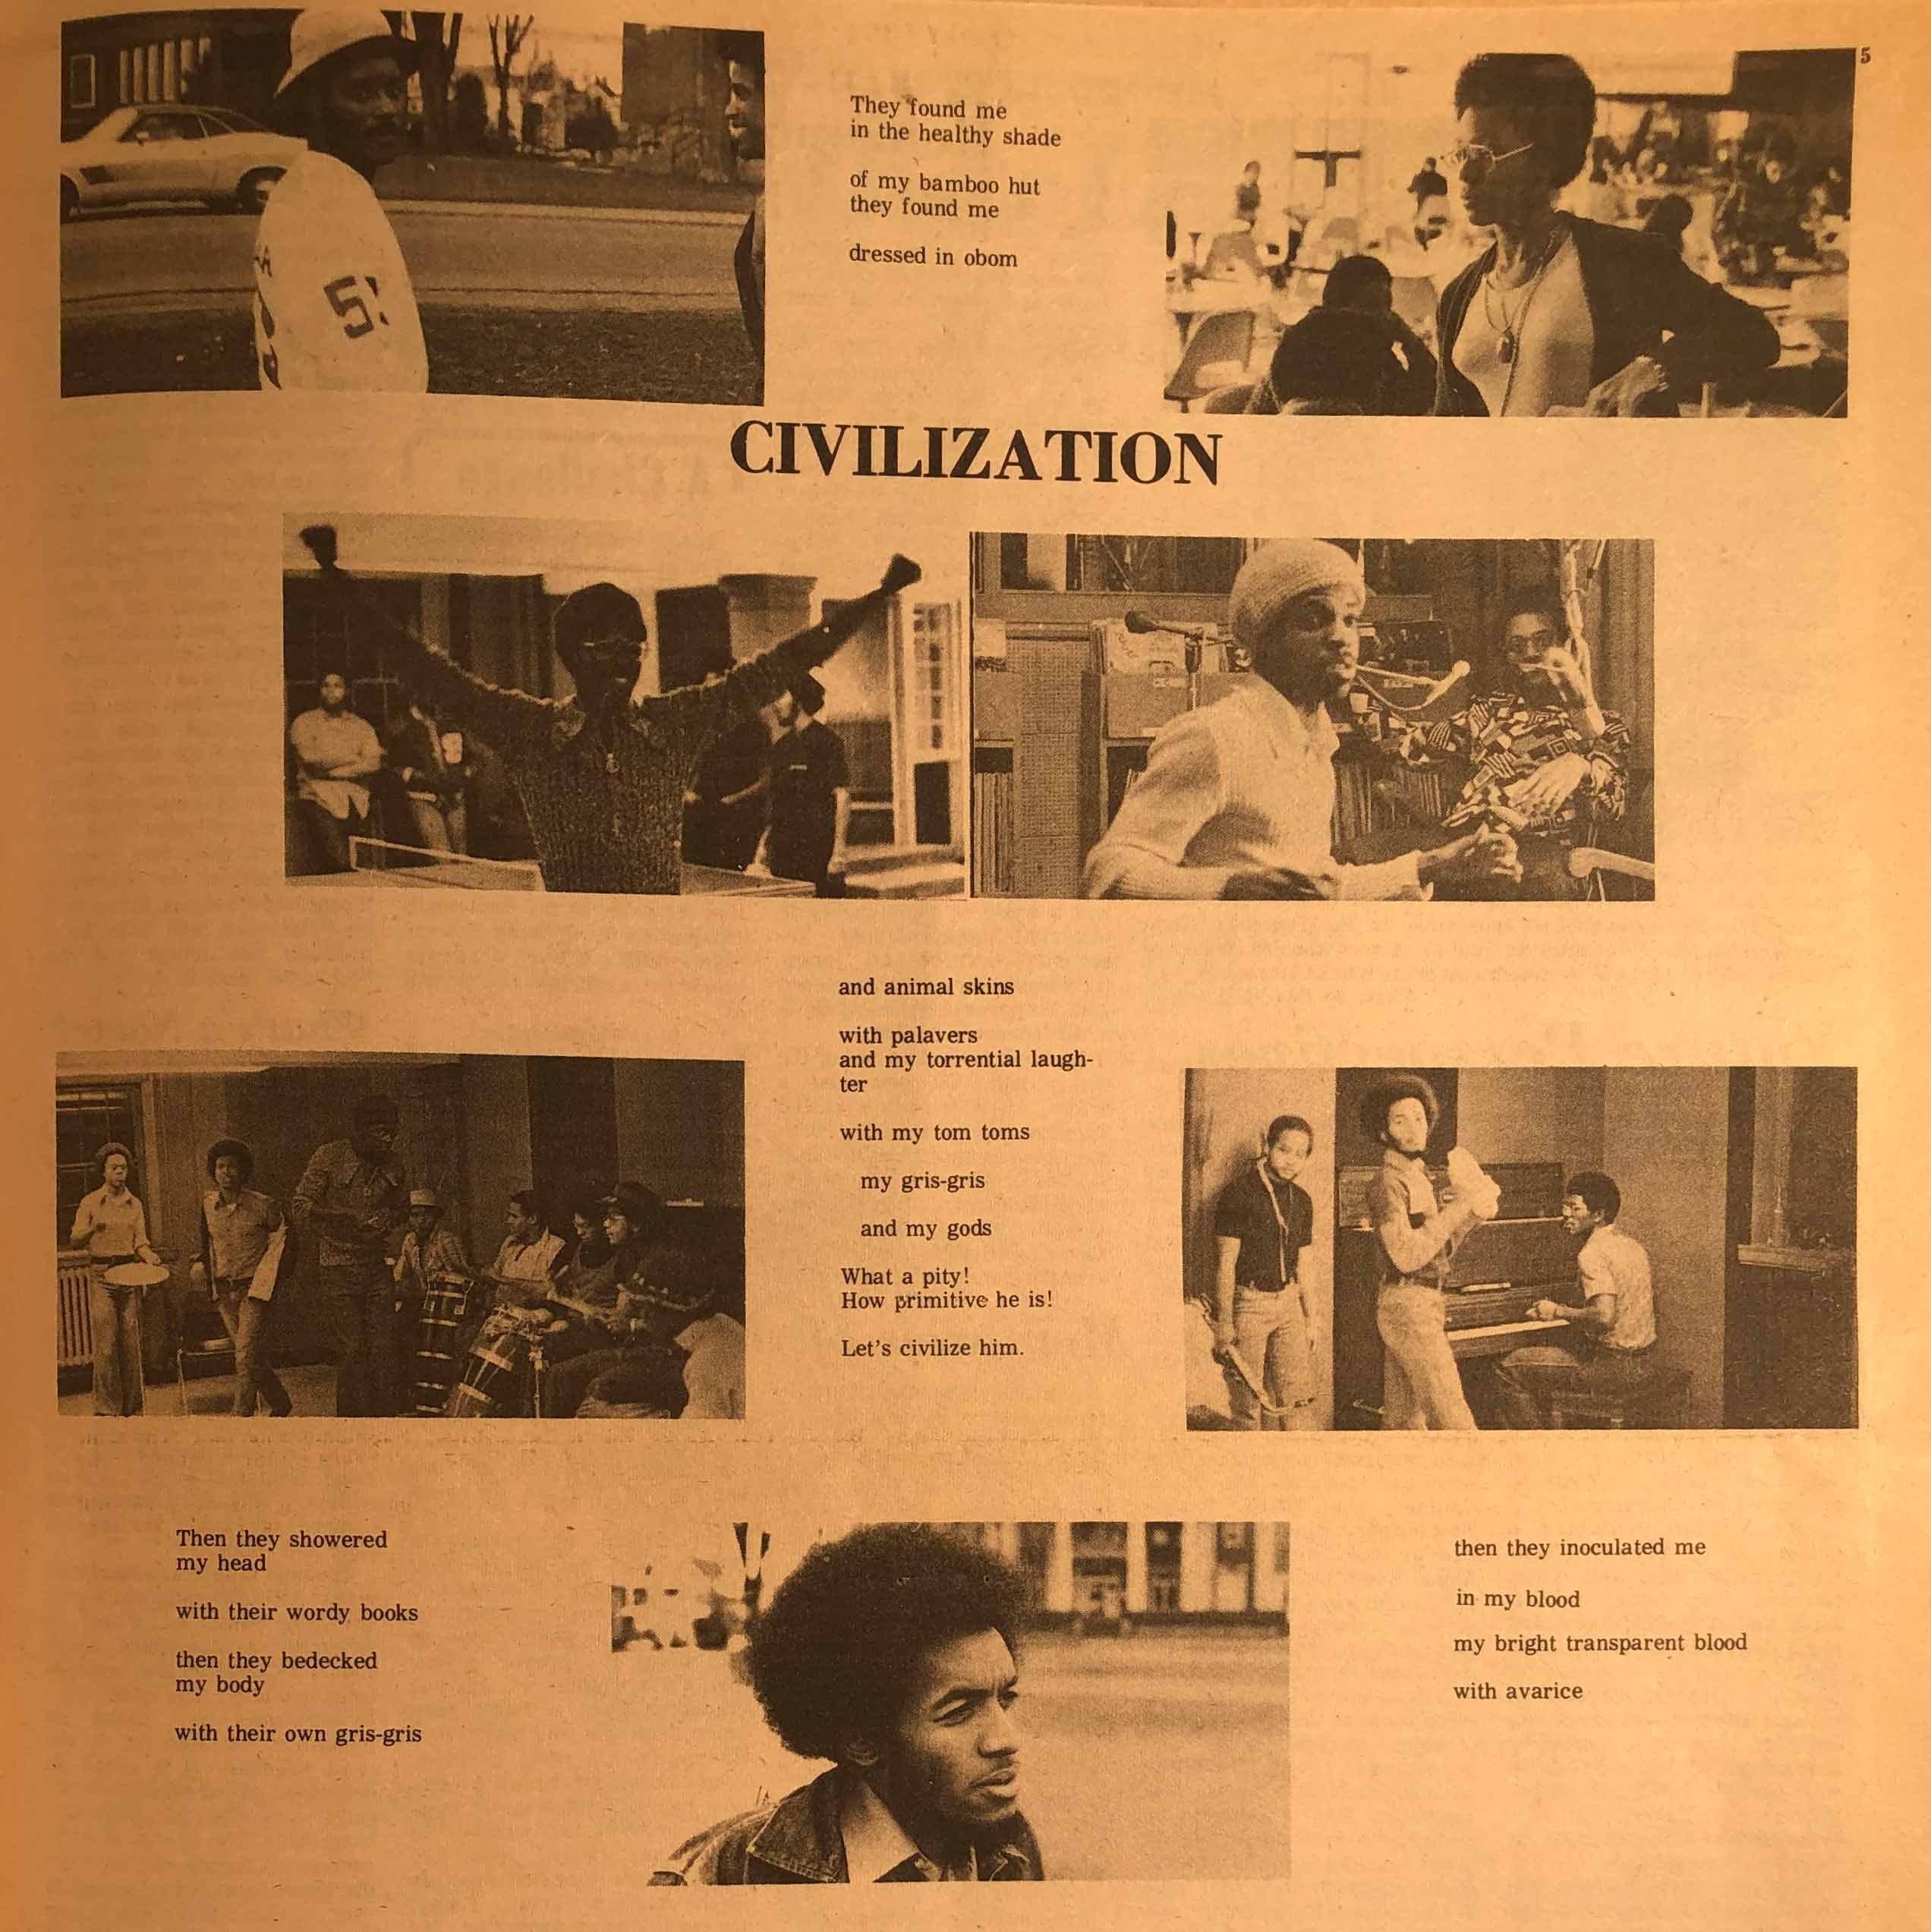 """This collage from the Afro-American Society publication Black Praxis depicts images of Black students at Dartmouth interspersed with words from a poem by Cameroonian poet Philombe. """"Civilization,"""" originally published in the book The Militant Black Writer in Africa and the United States, critiques colonization in Africa by underscoring the irony of Europeans seeking to """"civilize"""" African peoples through assimilation into cultures ripe with vice and evil."""